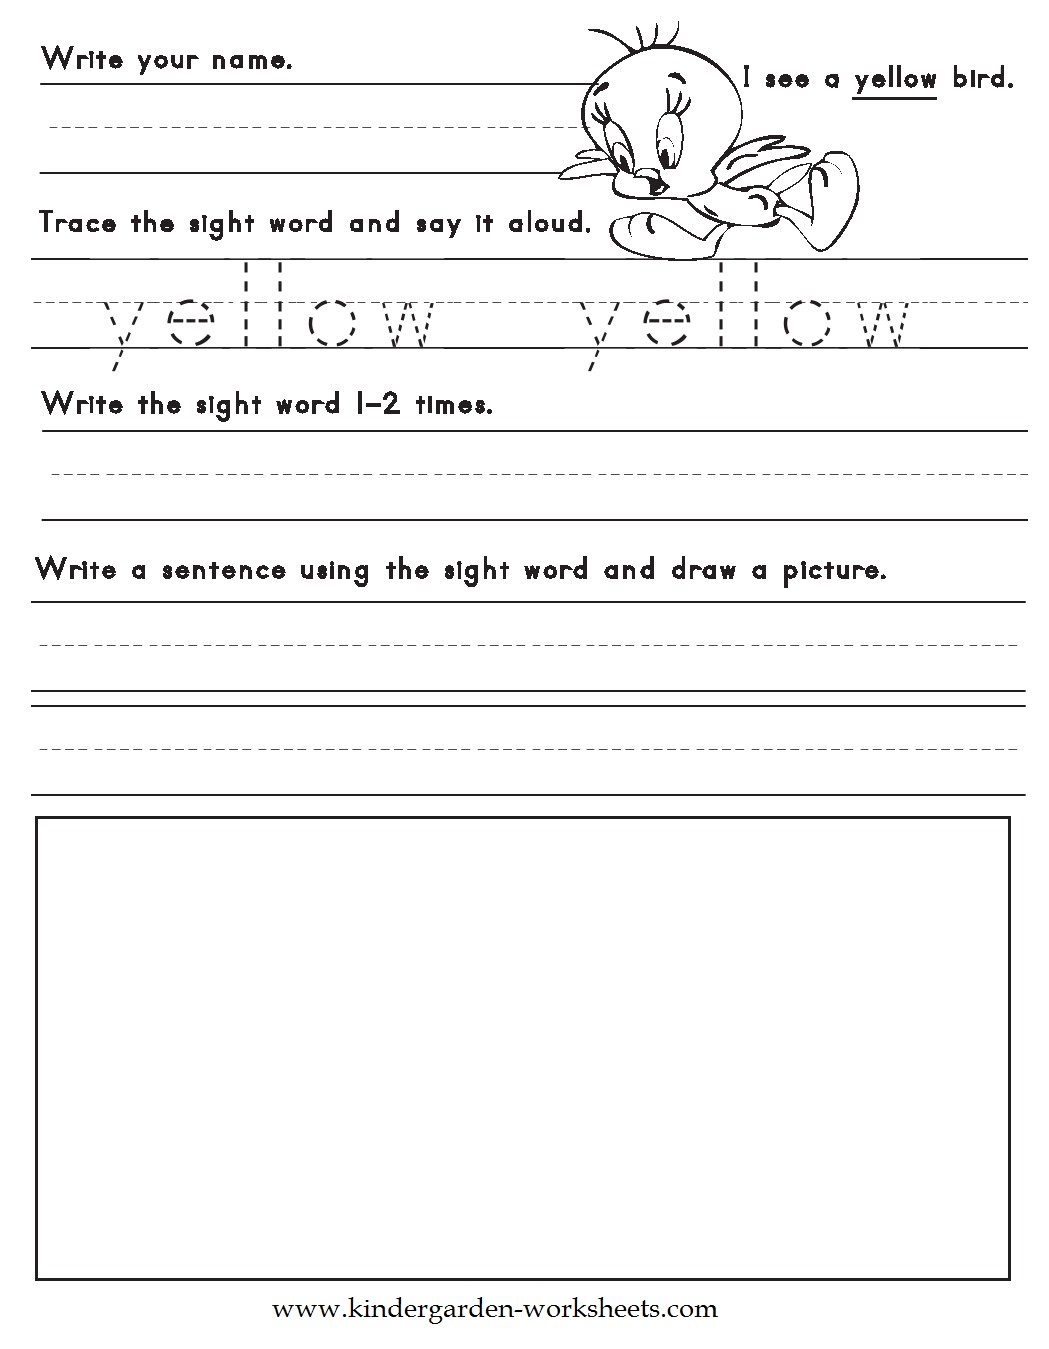 Kindergarten Worksheets Color Words Worksheets Yellow – Color Words Worksheets